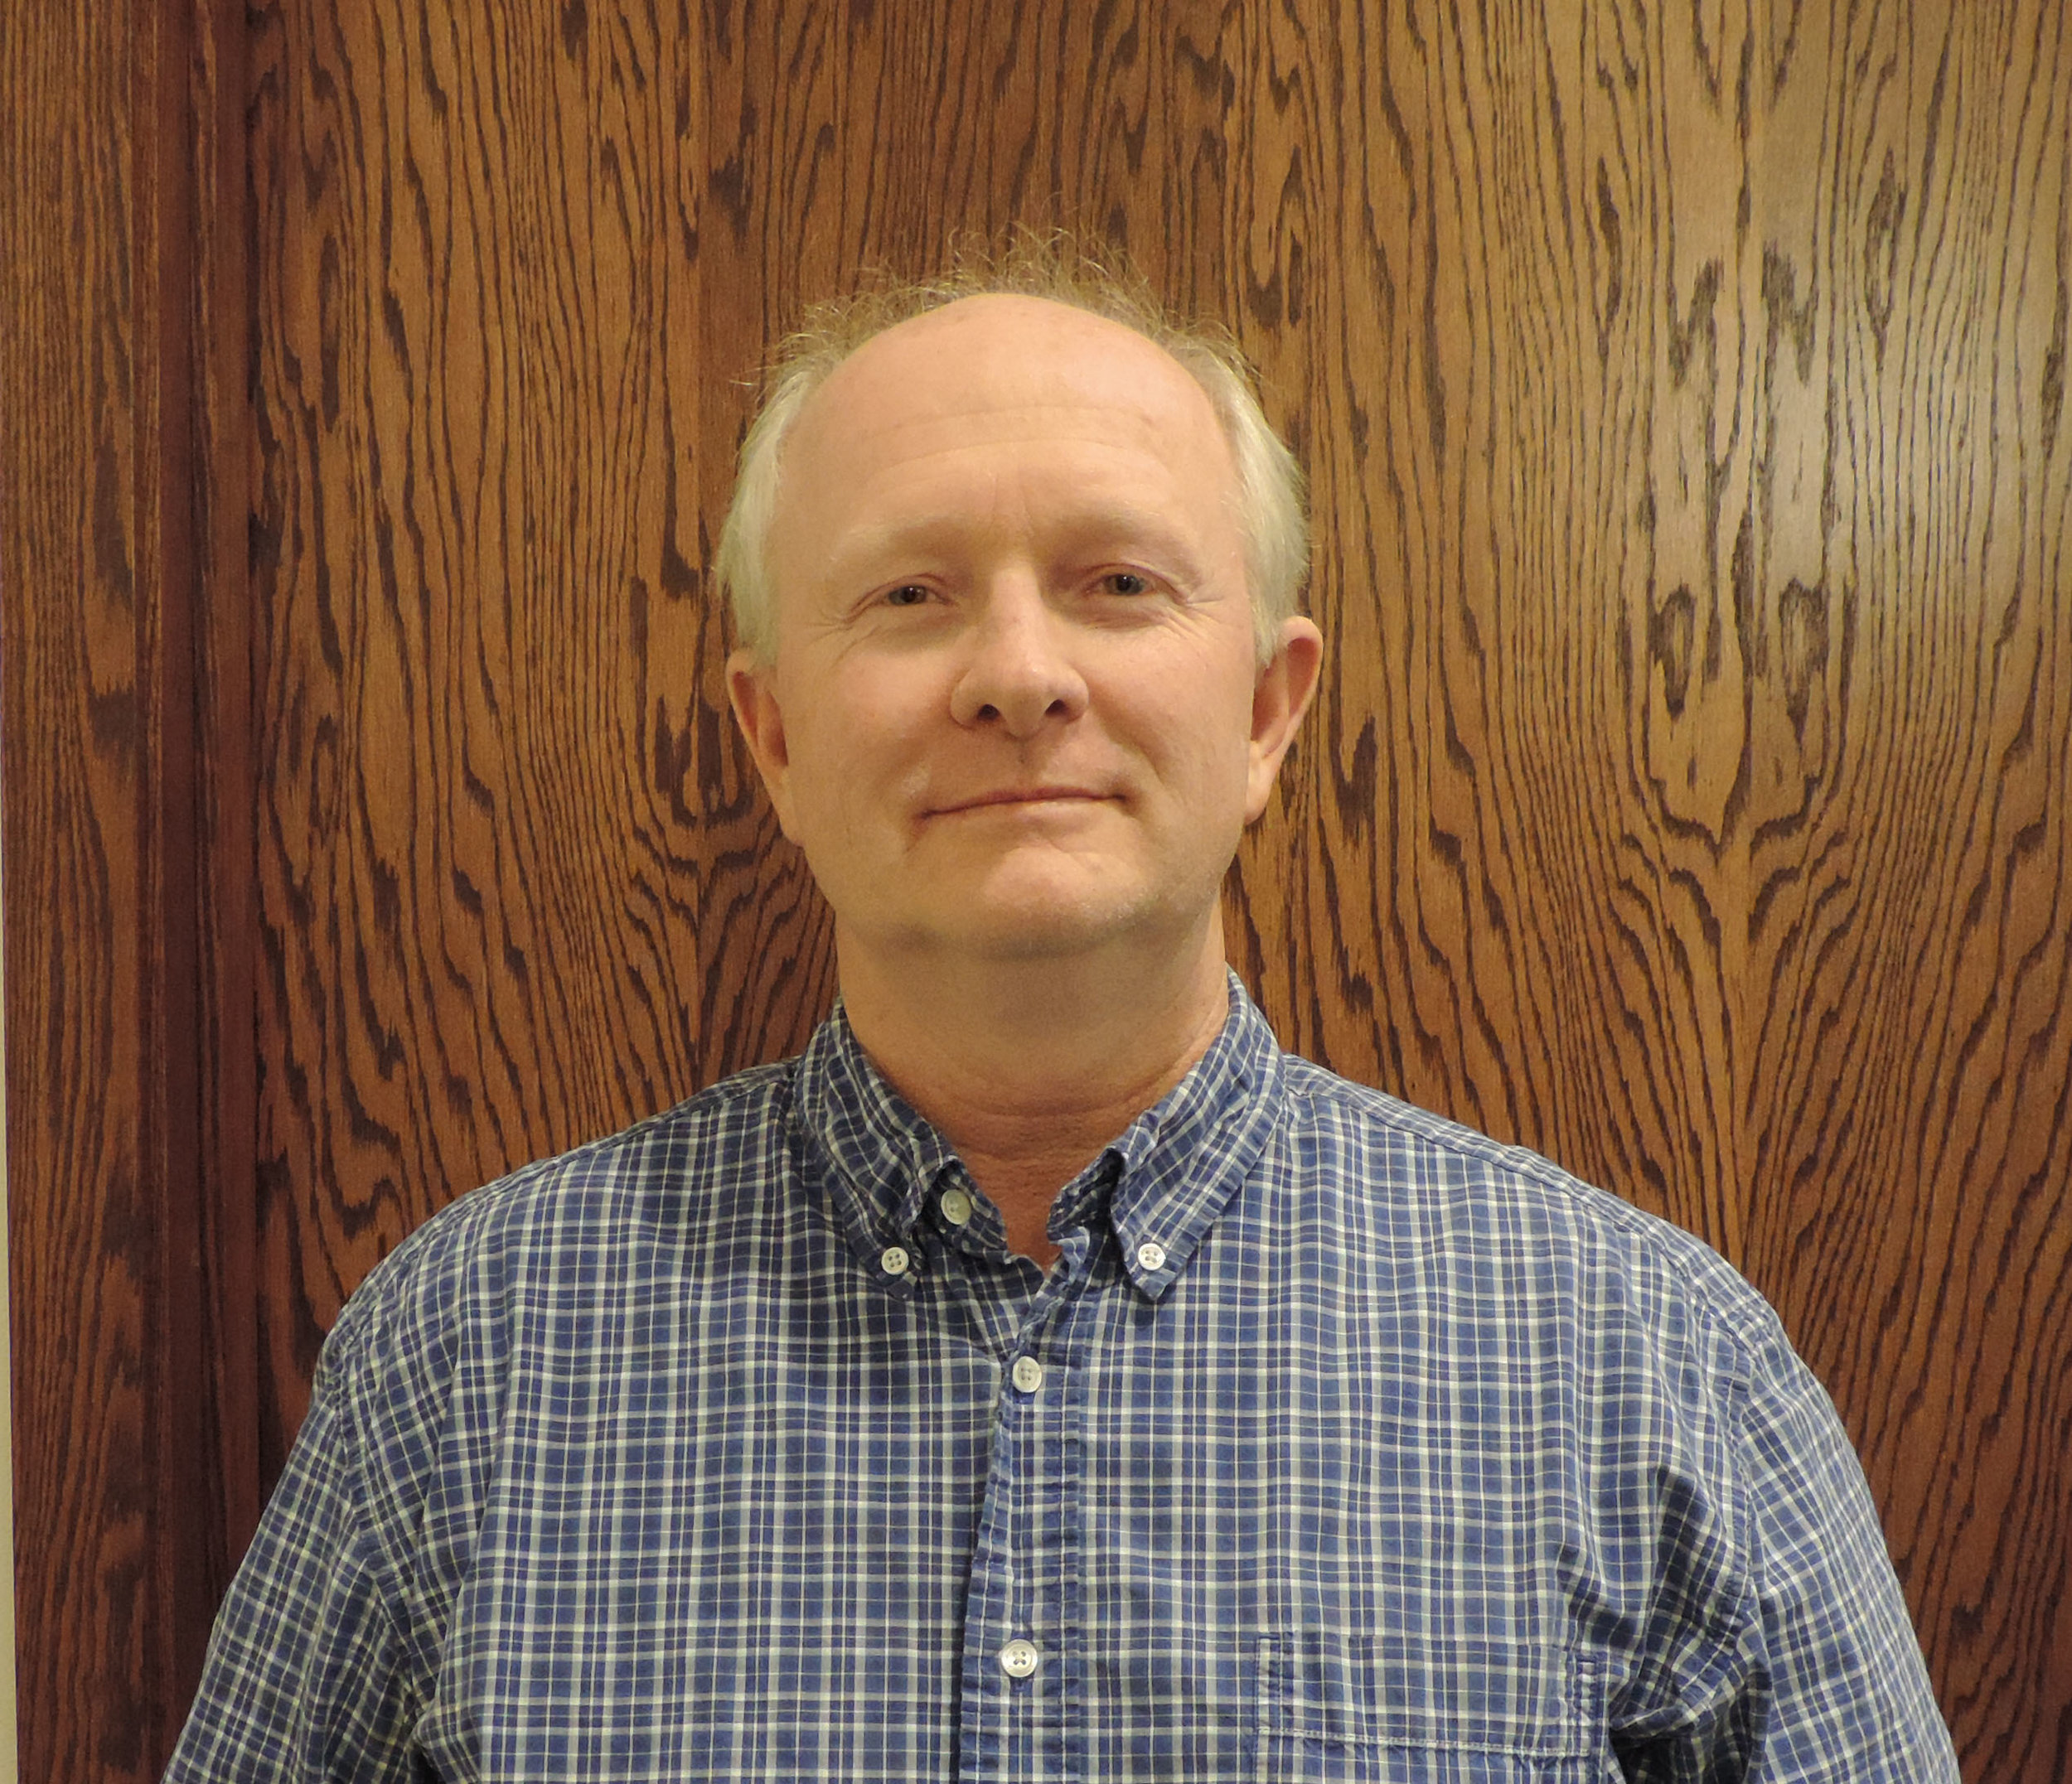 Brian Jenks - Weed Scientist, North Dakota State University, Minot, ND. (1997-present)Ph.D. in Weed Science from University of Nebraska-Lincoln, 1996Research focus: Find safe weed control solutions in crops grown in western ND